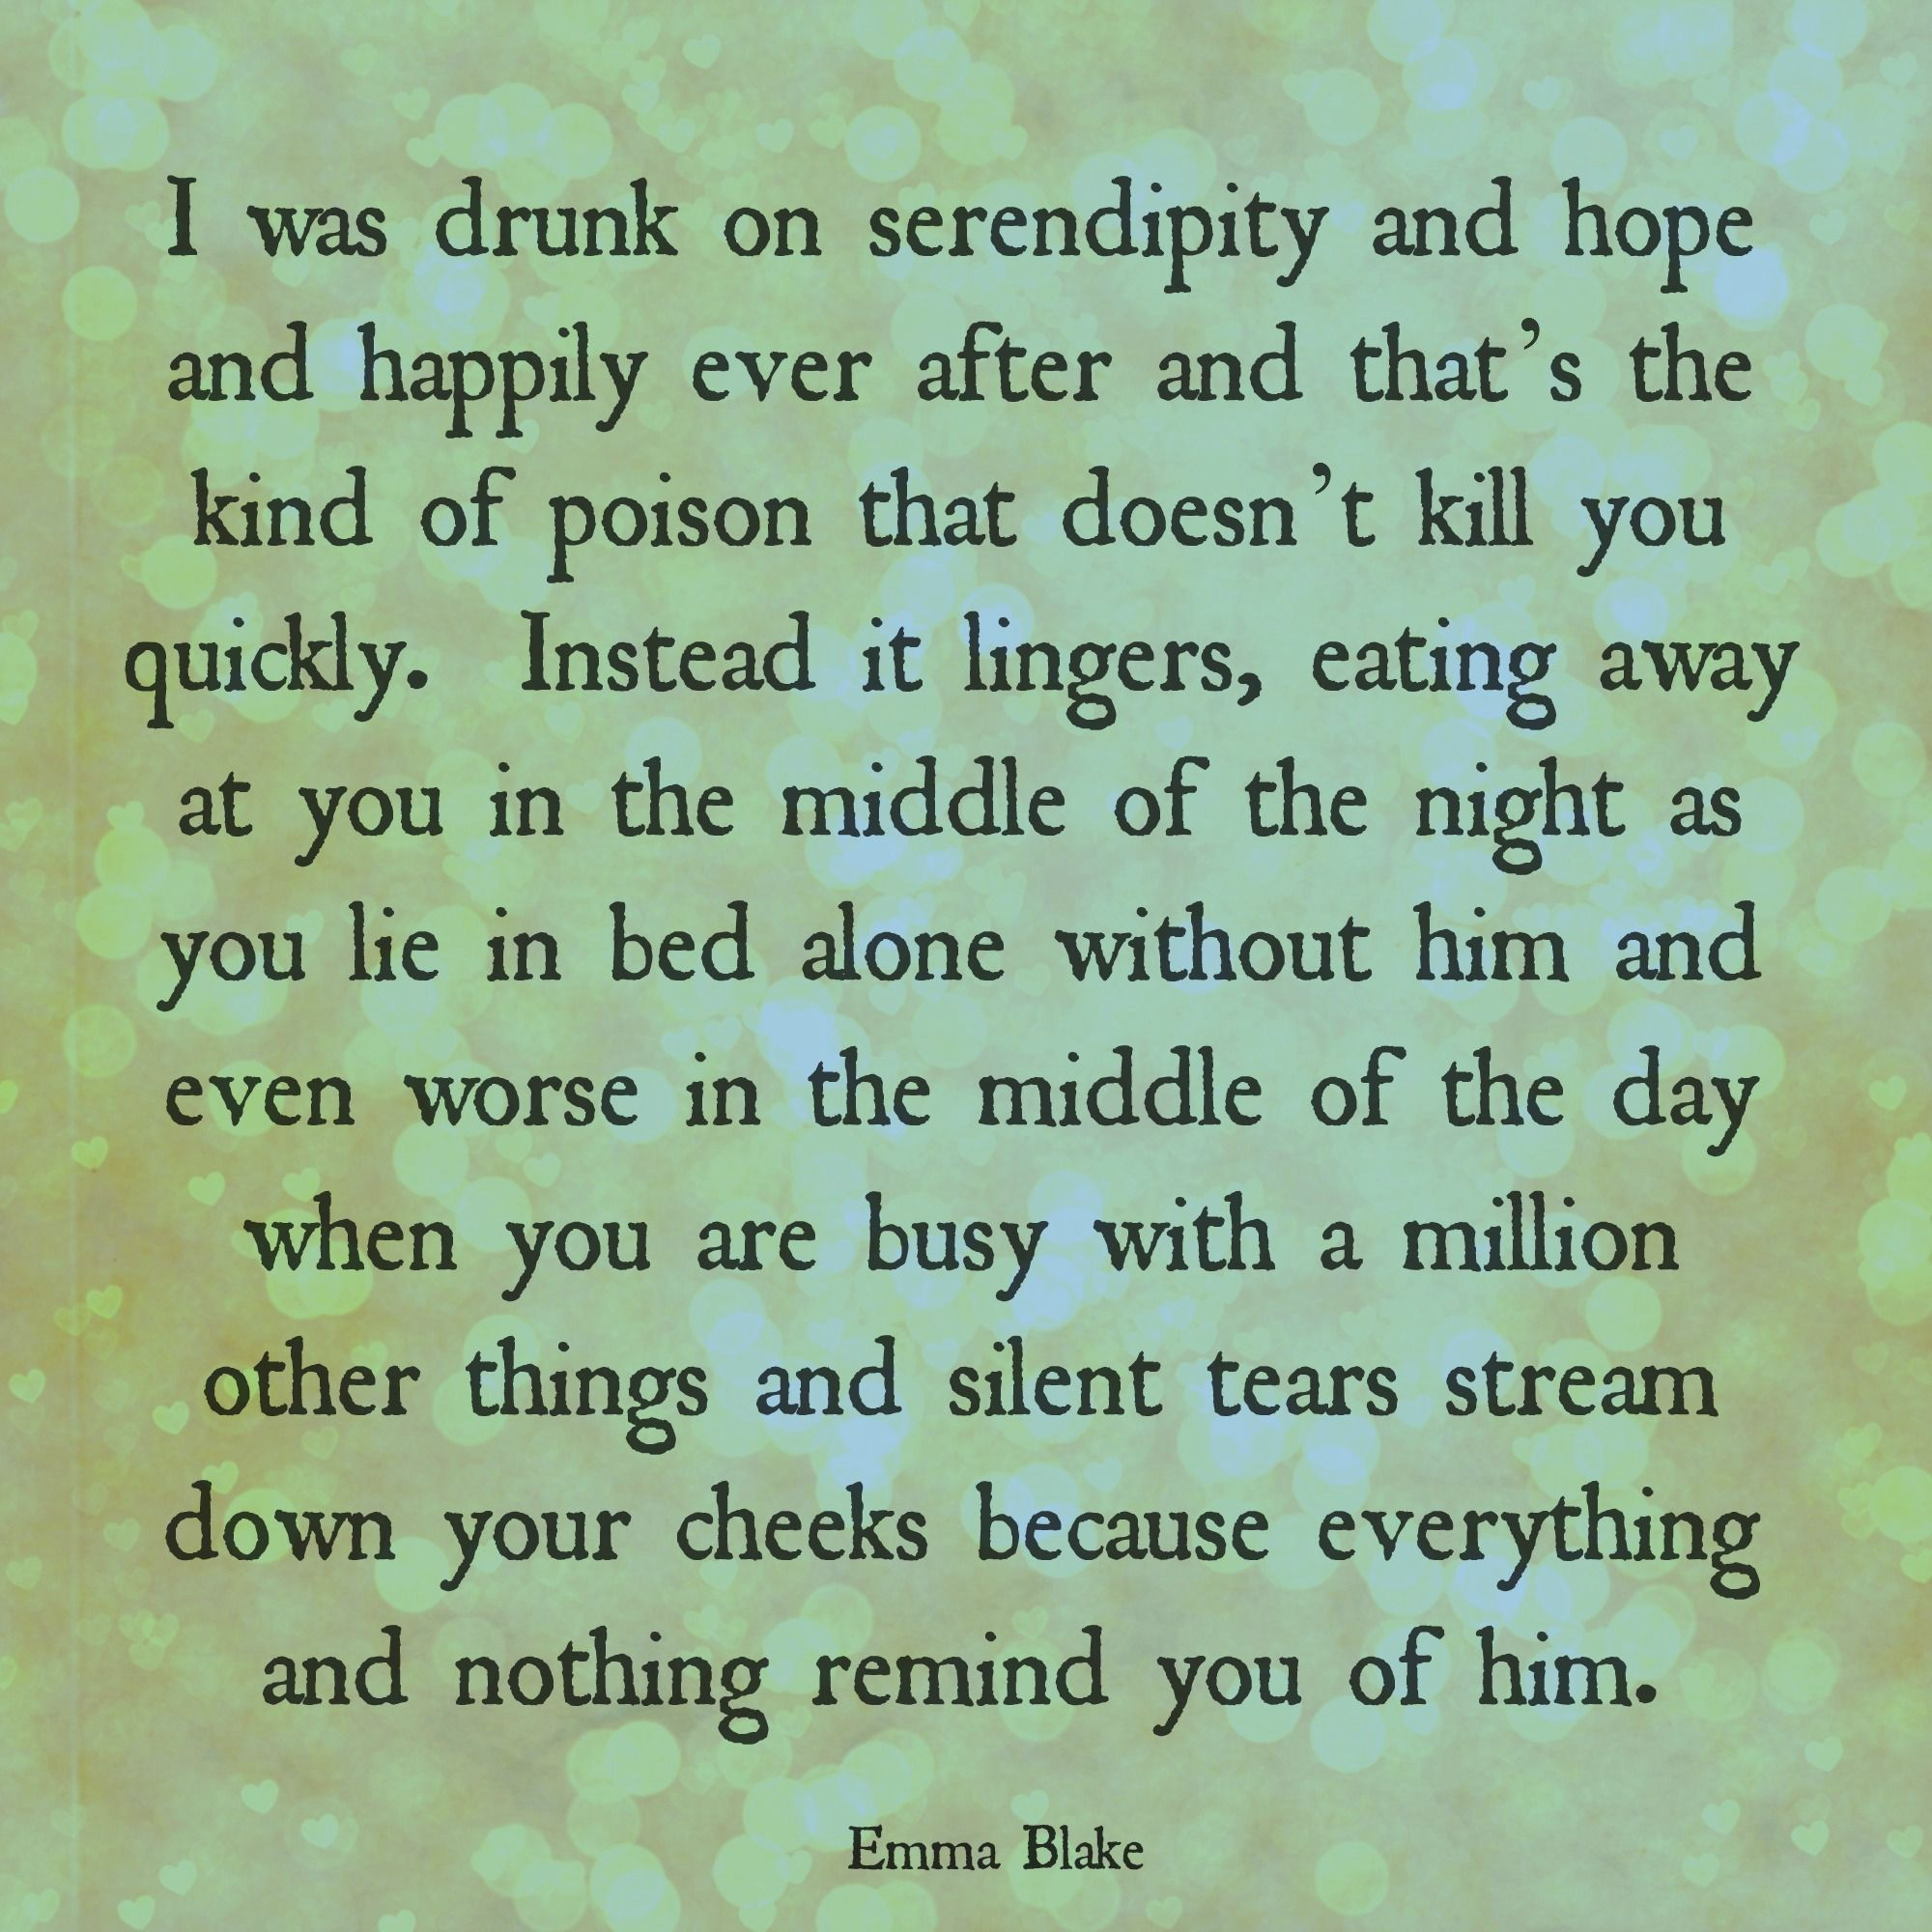 I was drunk on serendipity and hope and happily ever after and that's the kind of poison that doesn't kill you quickly. Instead it lingers, eating away at you in the middle of the night as you lie in bed alone without him and even worse in the middle of the day when you are busy with a million other things and silent tears stream down your cheeks because everything and nothing remind you of him. Heartbreak quote, soulmate quote, serendipity, missing, Broken-Hearted Girl, Emma Blake poetry